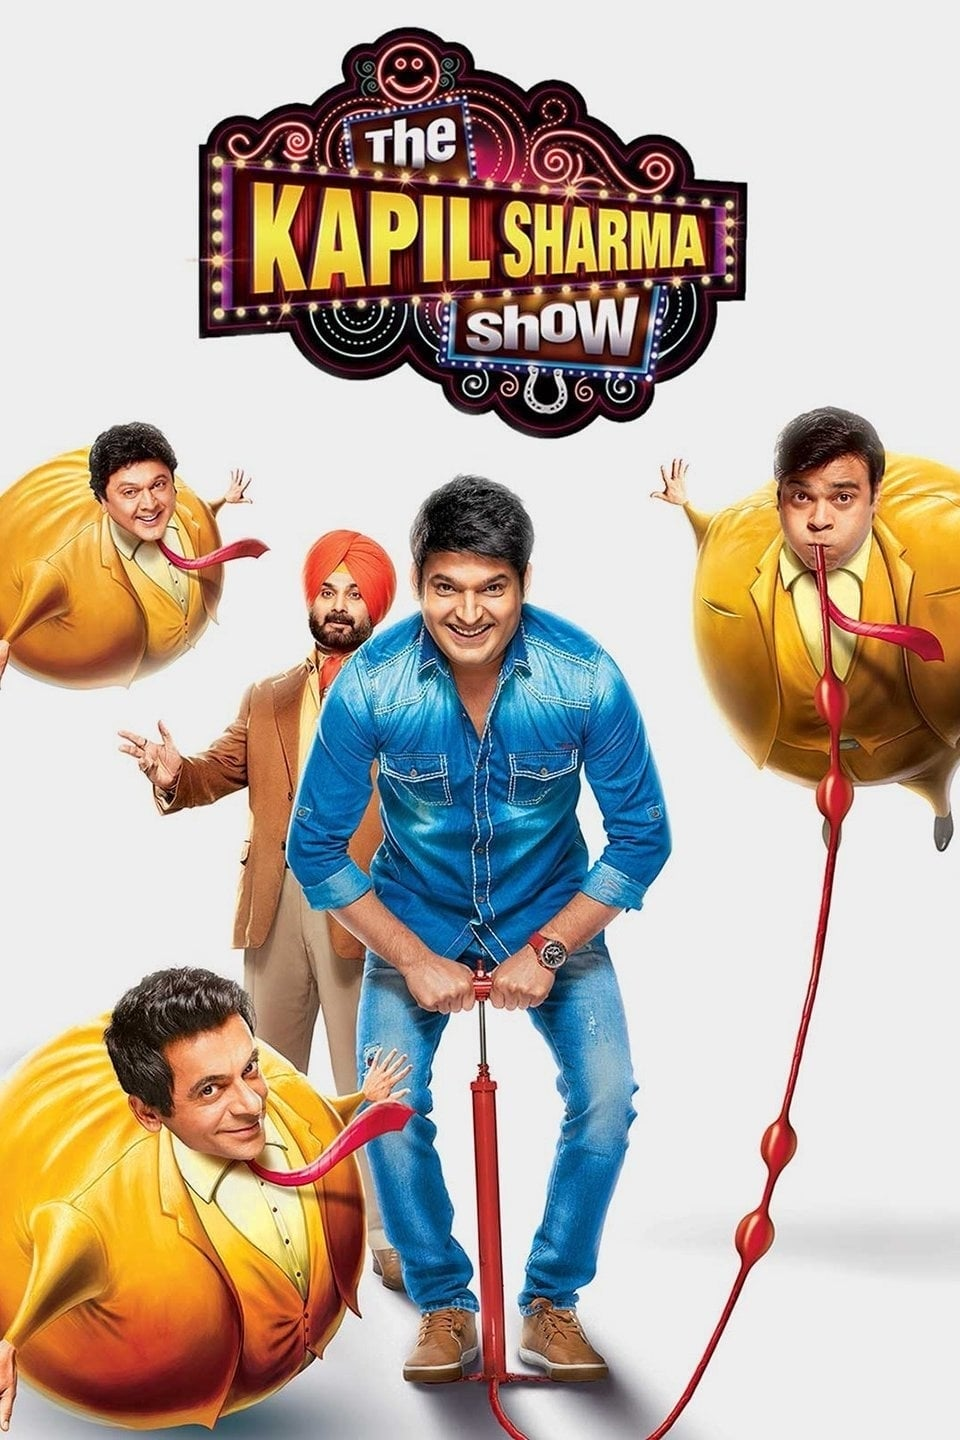 The Kapil Sharma Show (2019) Season 2 [07 Dec 2019] 576p HDTV | Full Episode